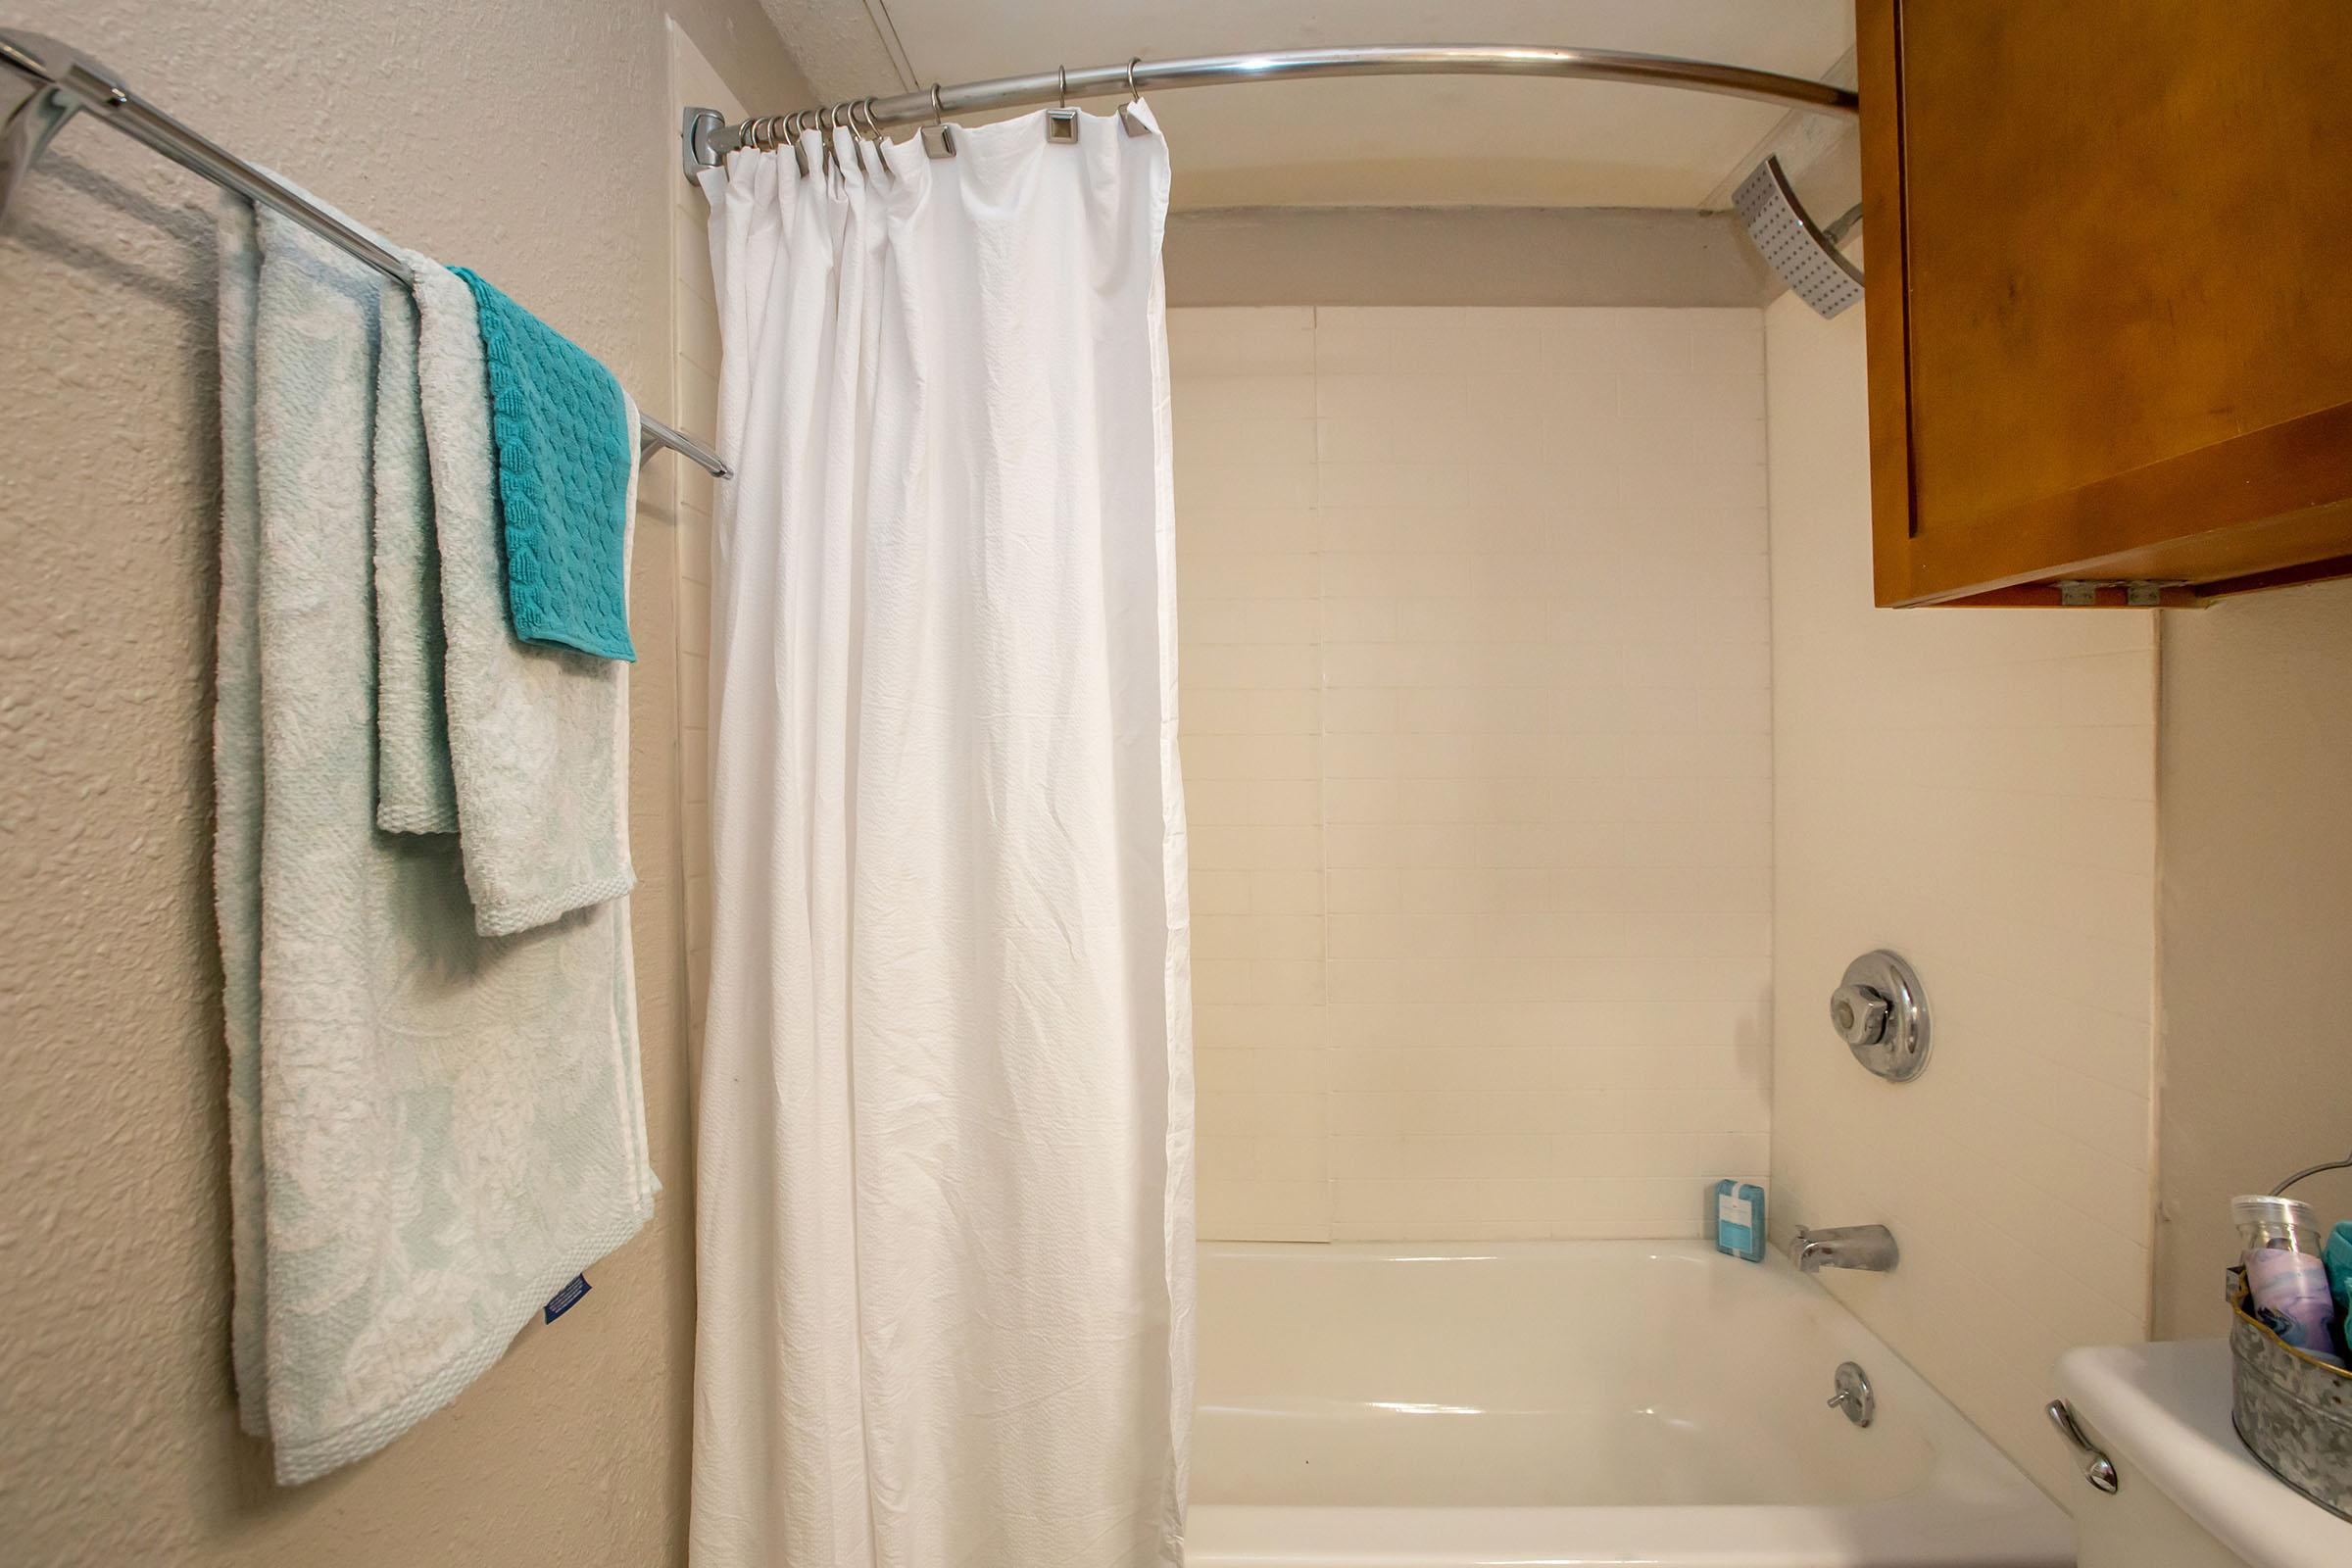 a shower curtain with a towel hanging on the wall